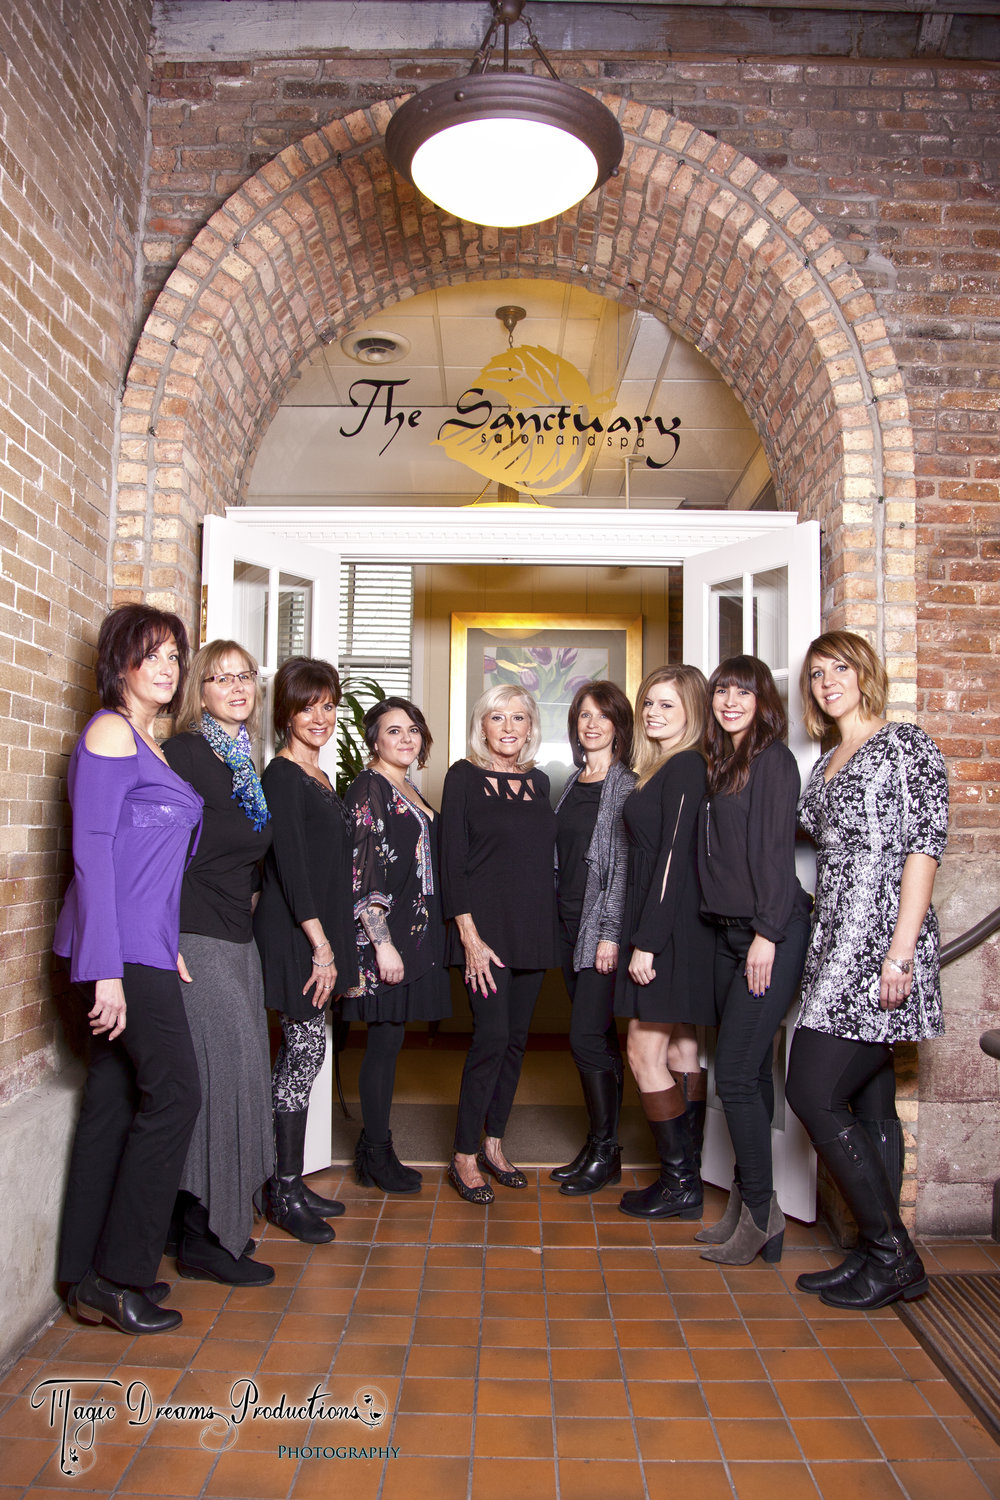 The Staff of Sanctuary Salon and Spa    Welcome Our New Team Members : Our New Nail Technician,  Meta and our New Stylist, Marty.      Book appointments today!